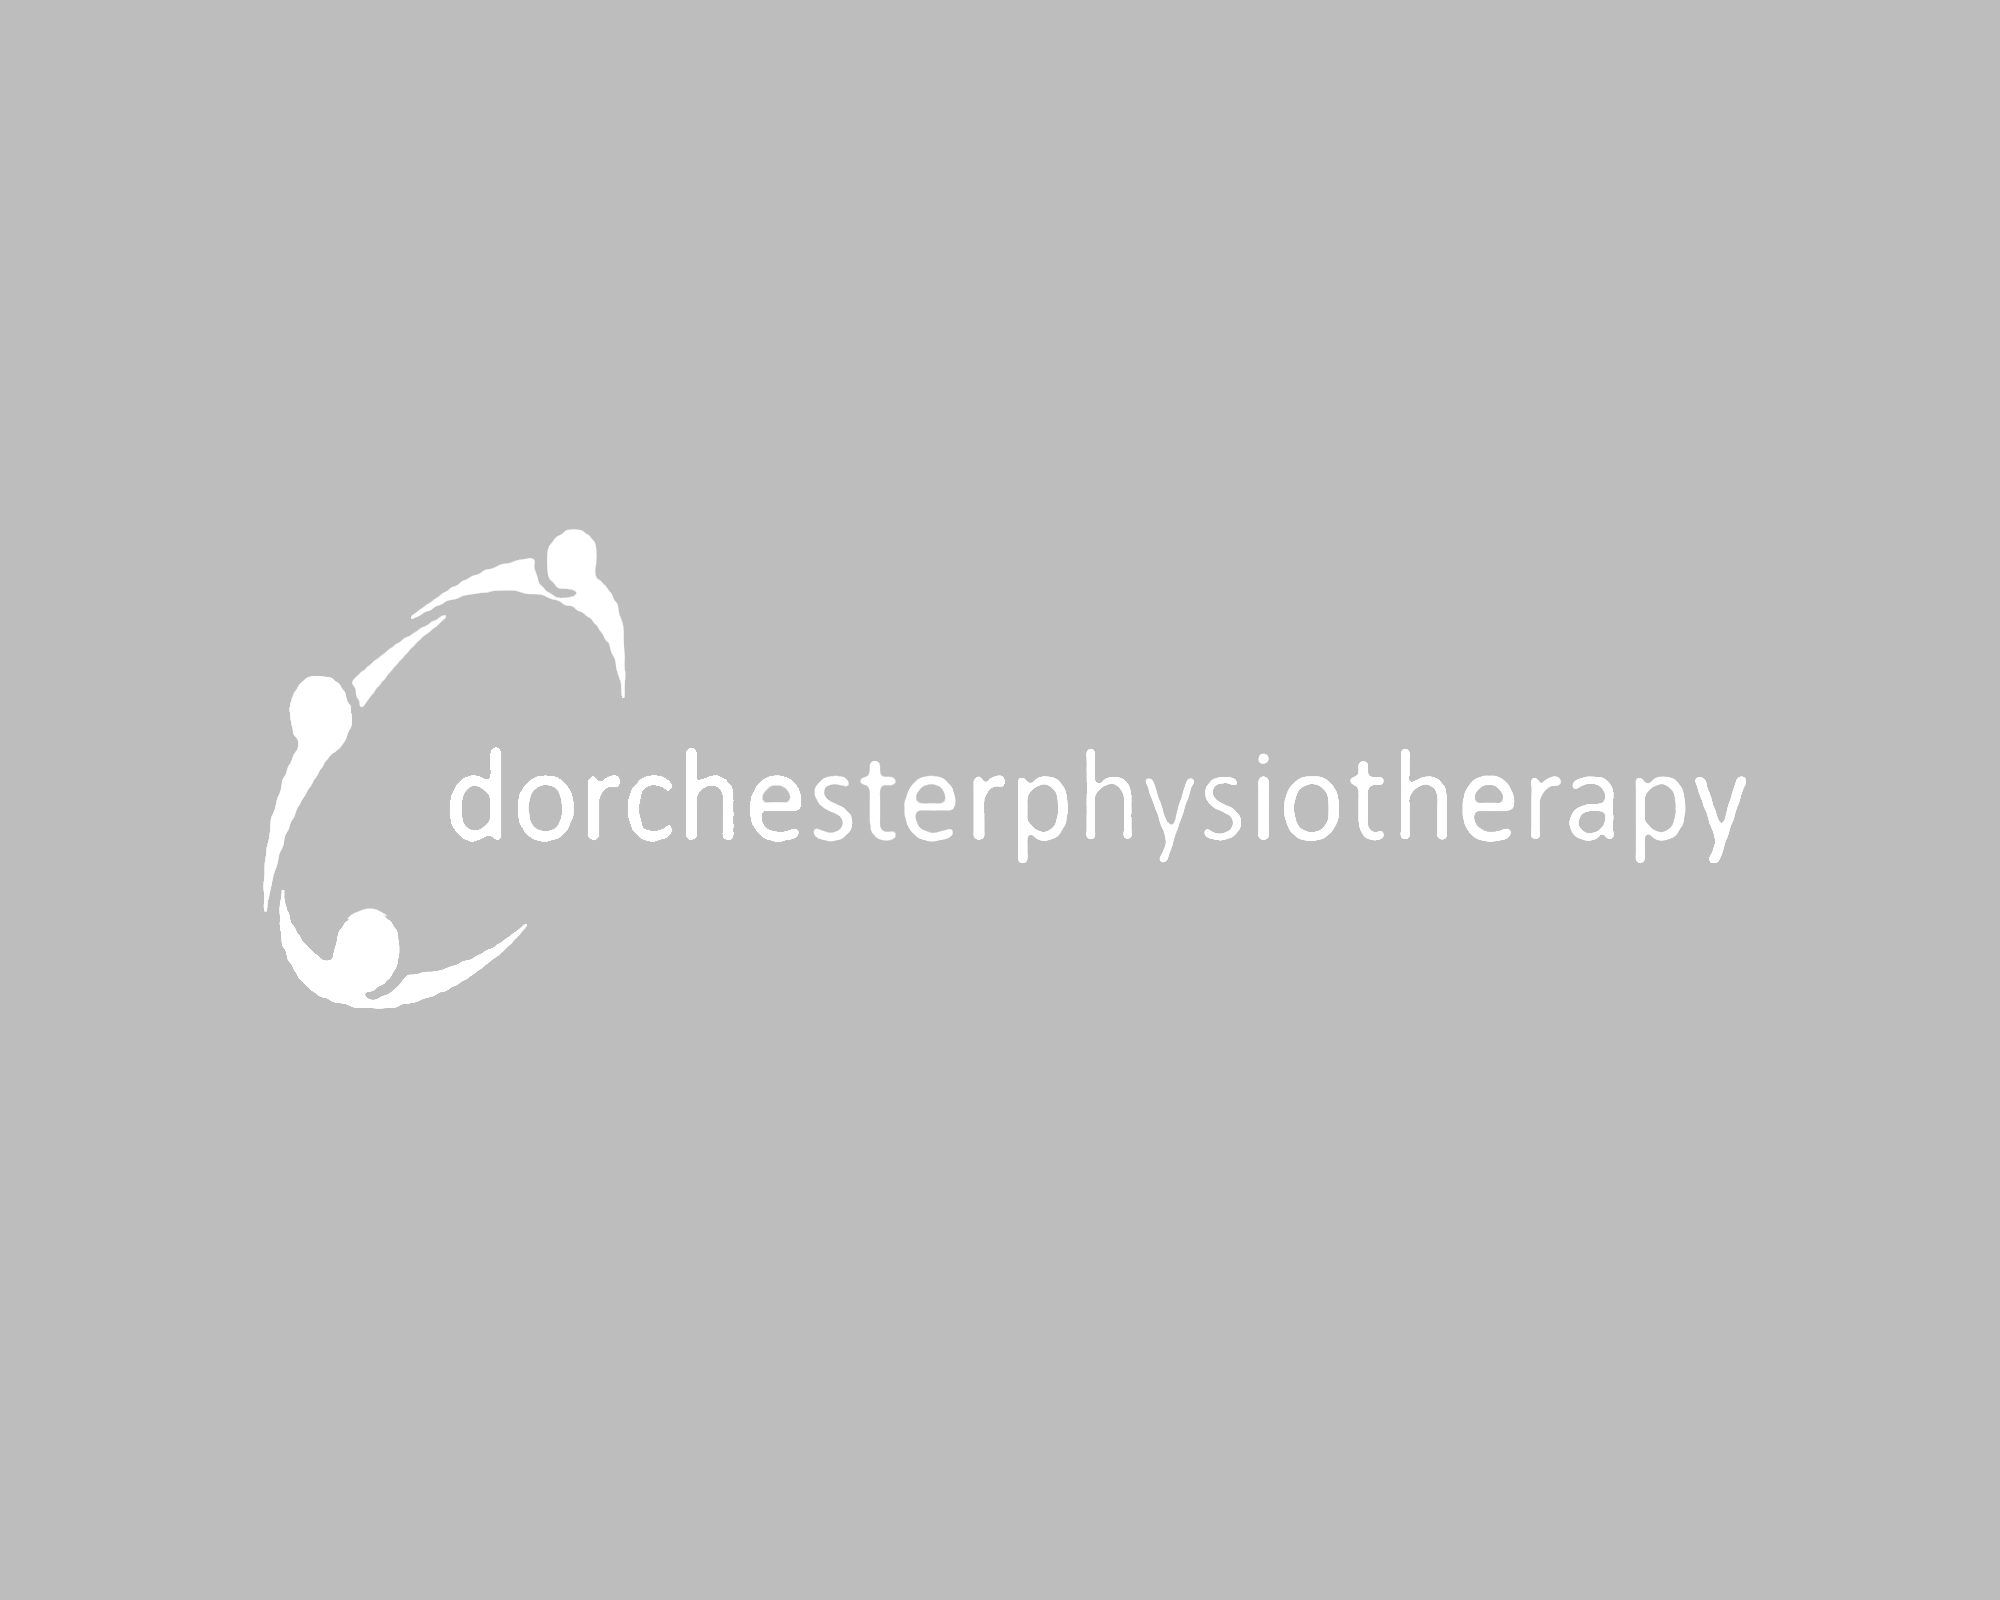 dorchester physiotherapy Logo